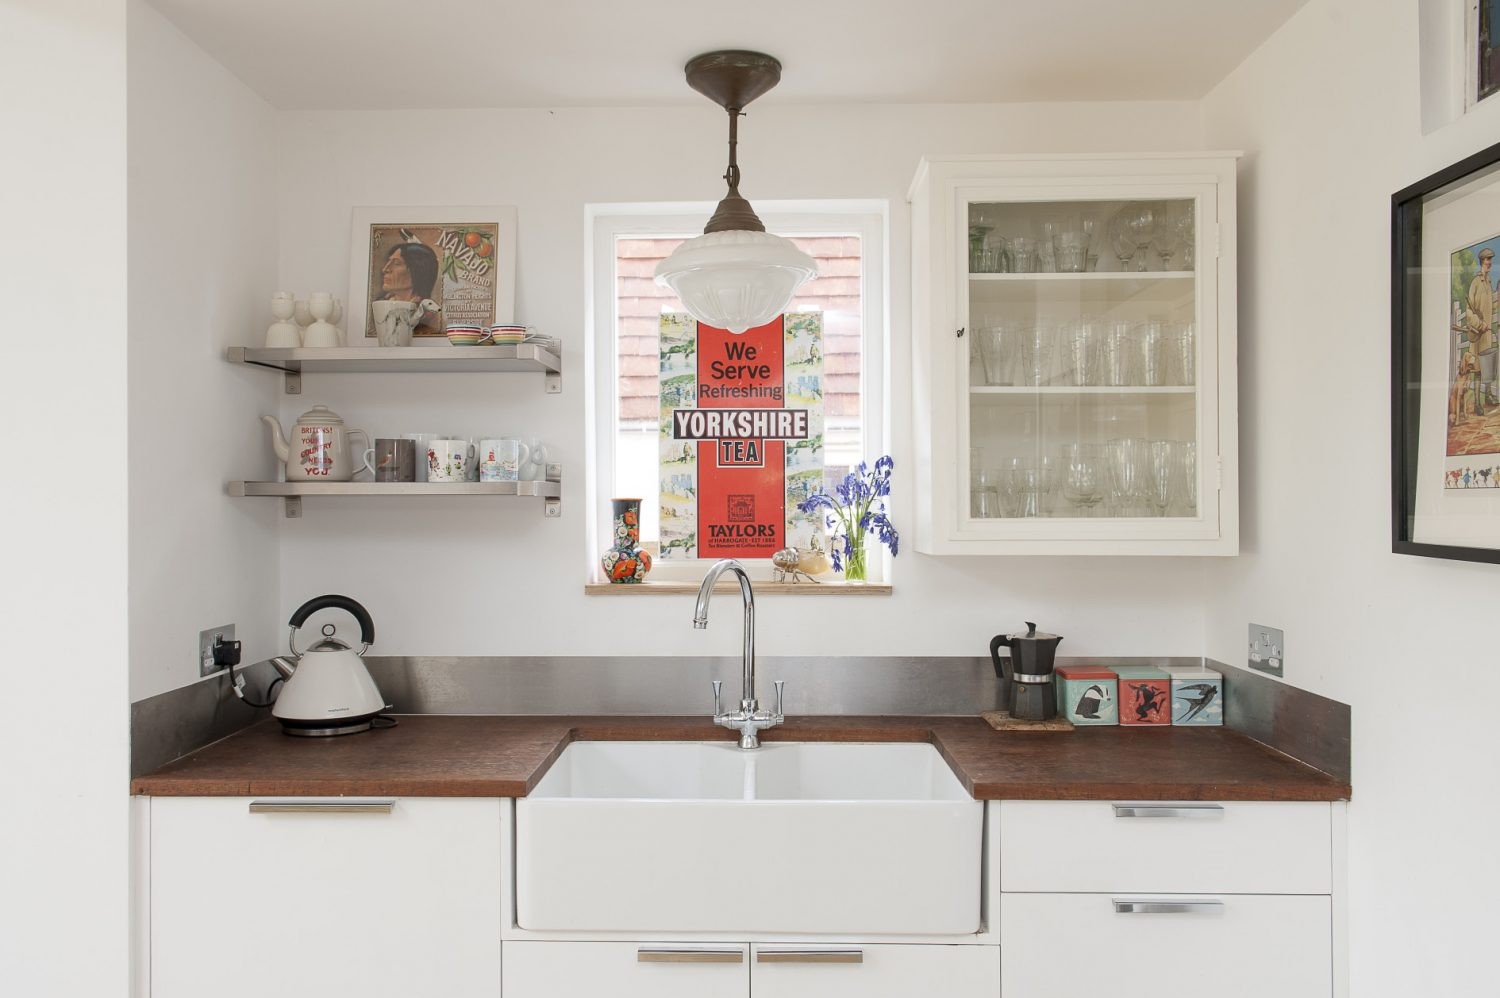 There is nothing twee about this stylish home which is filled with decorative items and mementos from around the world as well as practical touches such as a professional range cooker. This orderly sink area is across the room from the main food prep area, which has its own 'island' and boat-galley sink